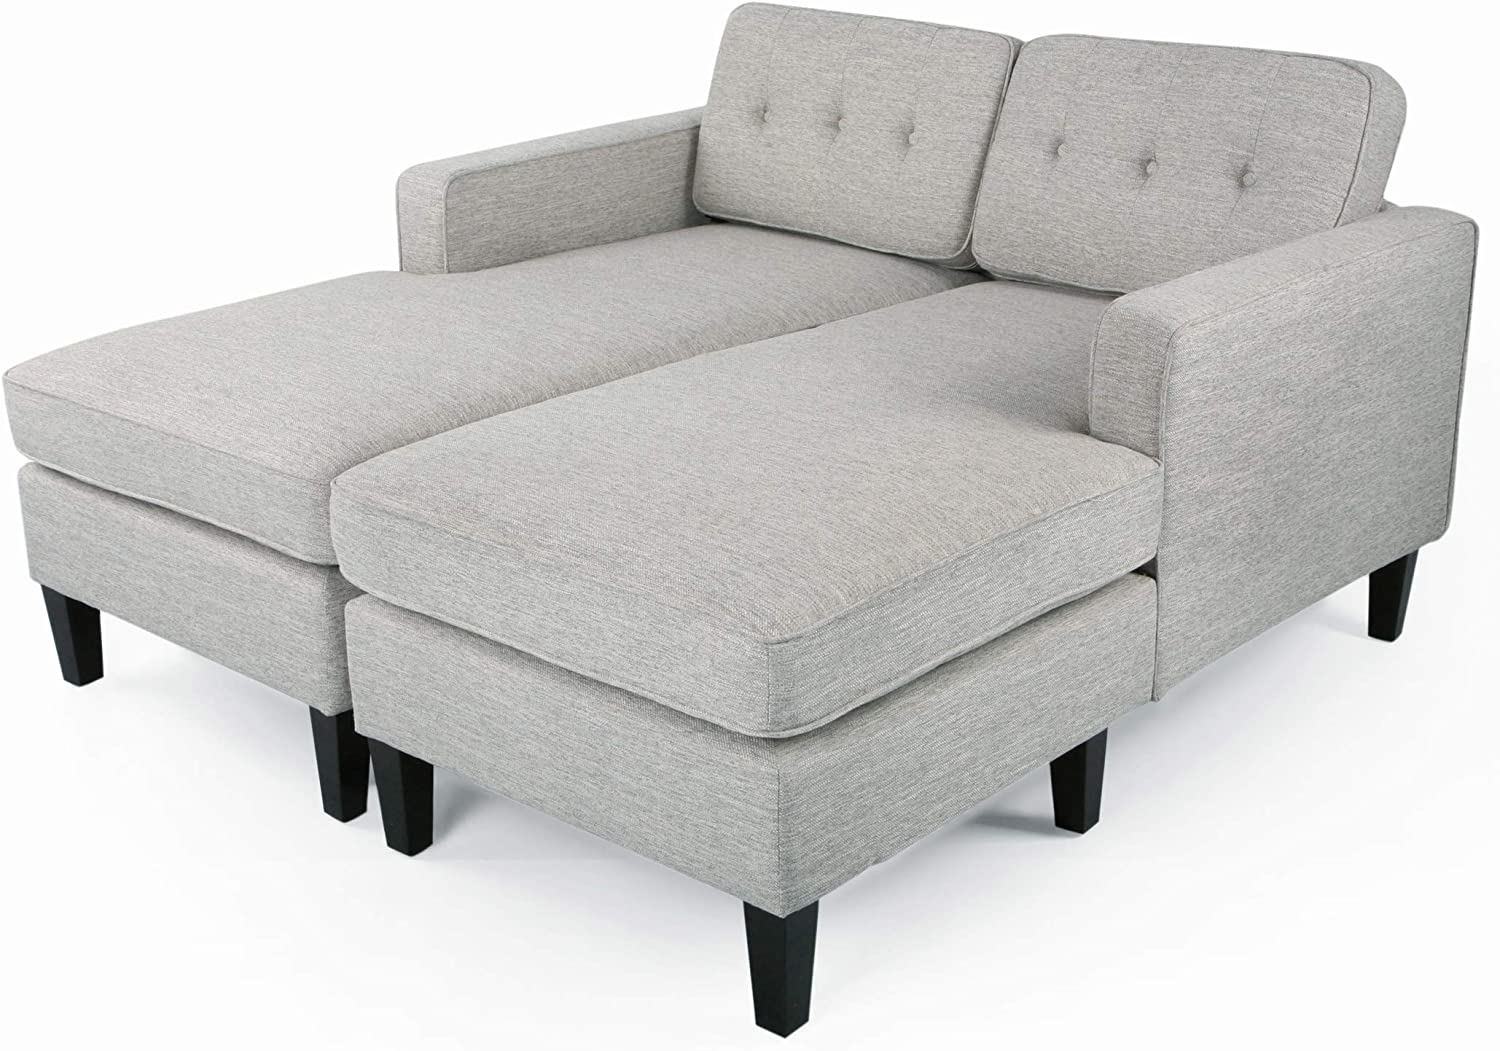 - Amazon.com: Jean Modern Fabric Double Chaise Daybed, Light Gray